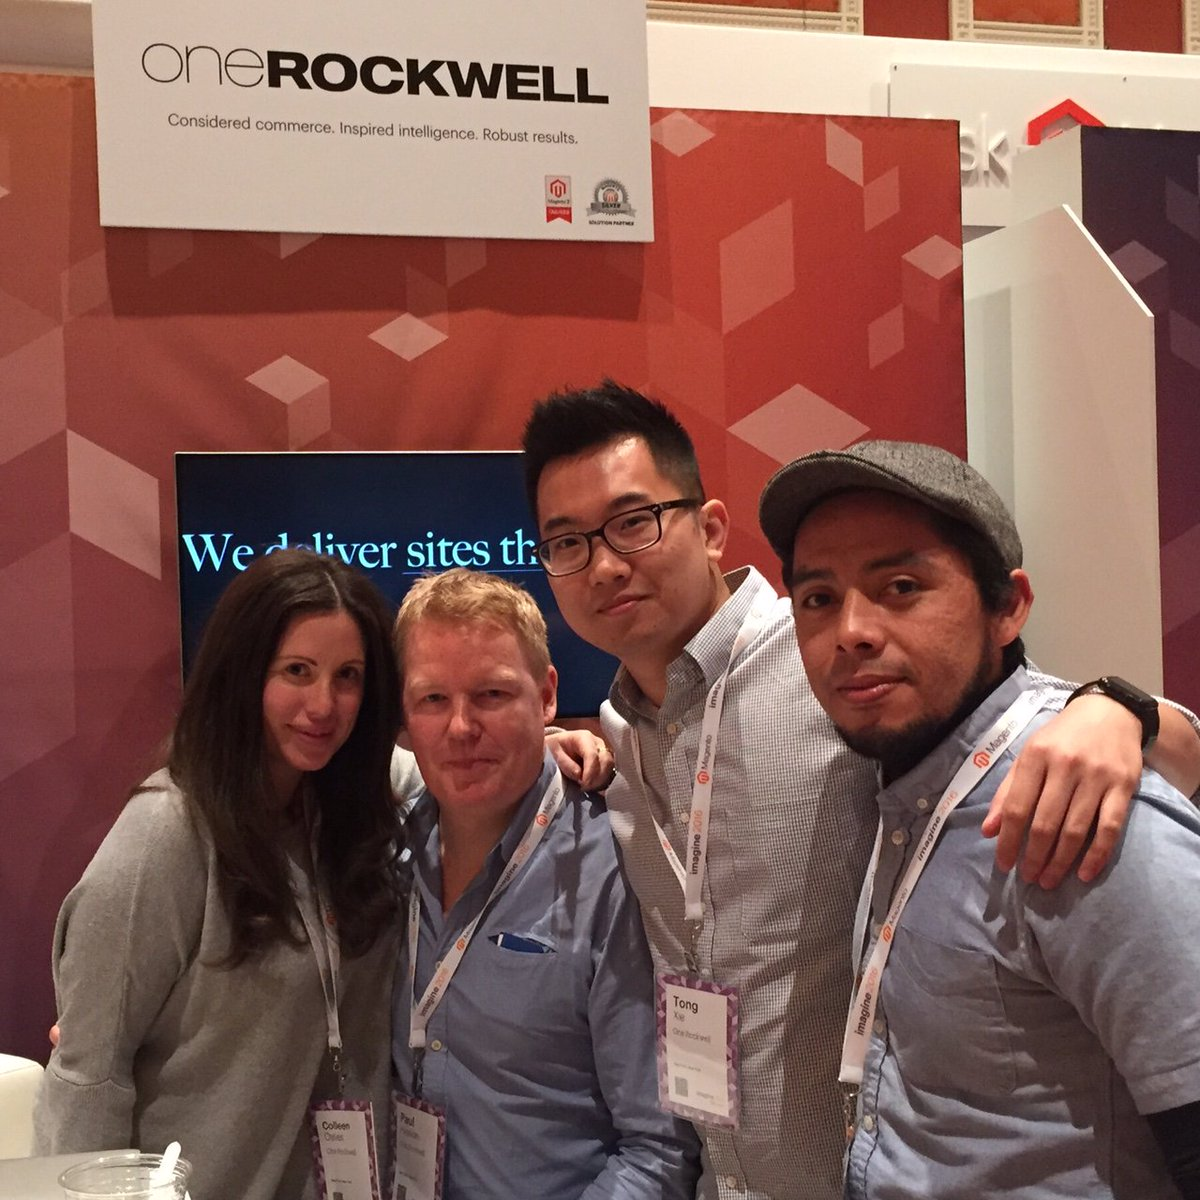 onerockwellny: Good times @ #MagentoImagine! Mara Hoffman & Juice Beauty prizes awarded for the day. Booth #219 tomorrow to win! https://t.co/1WhoMAdMR0